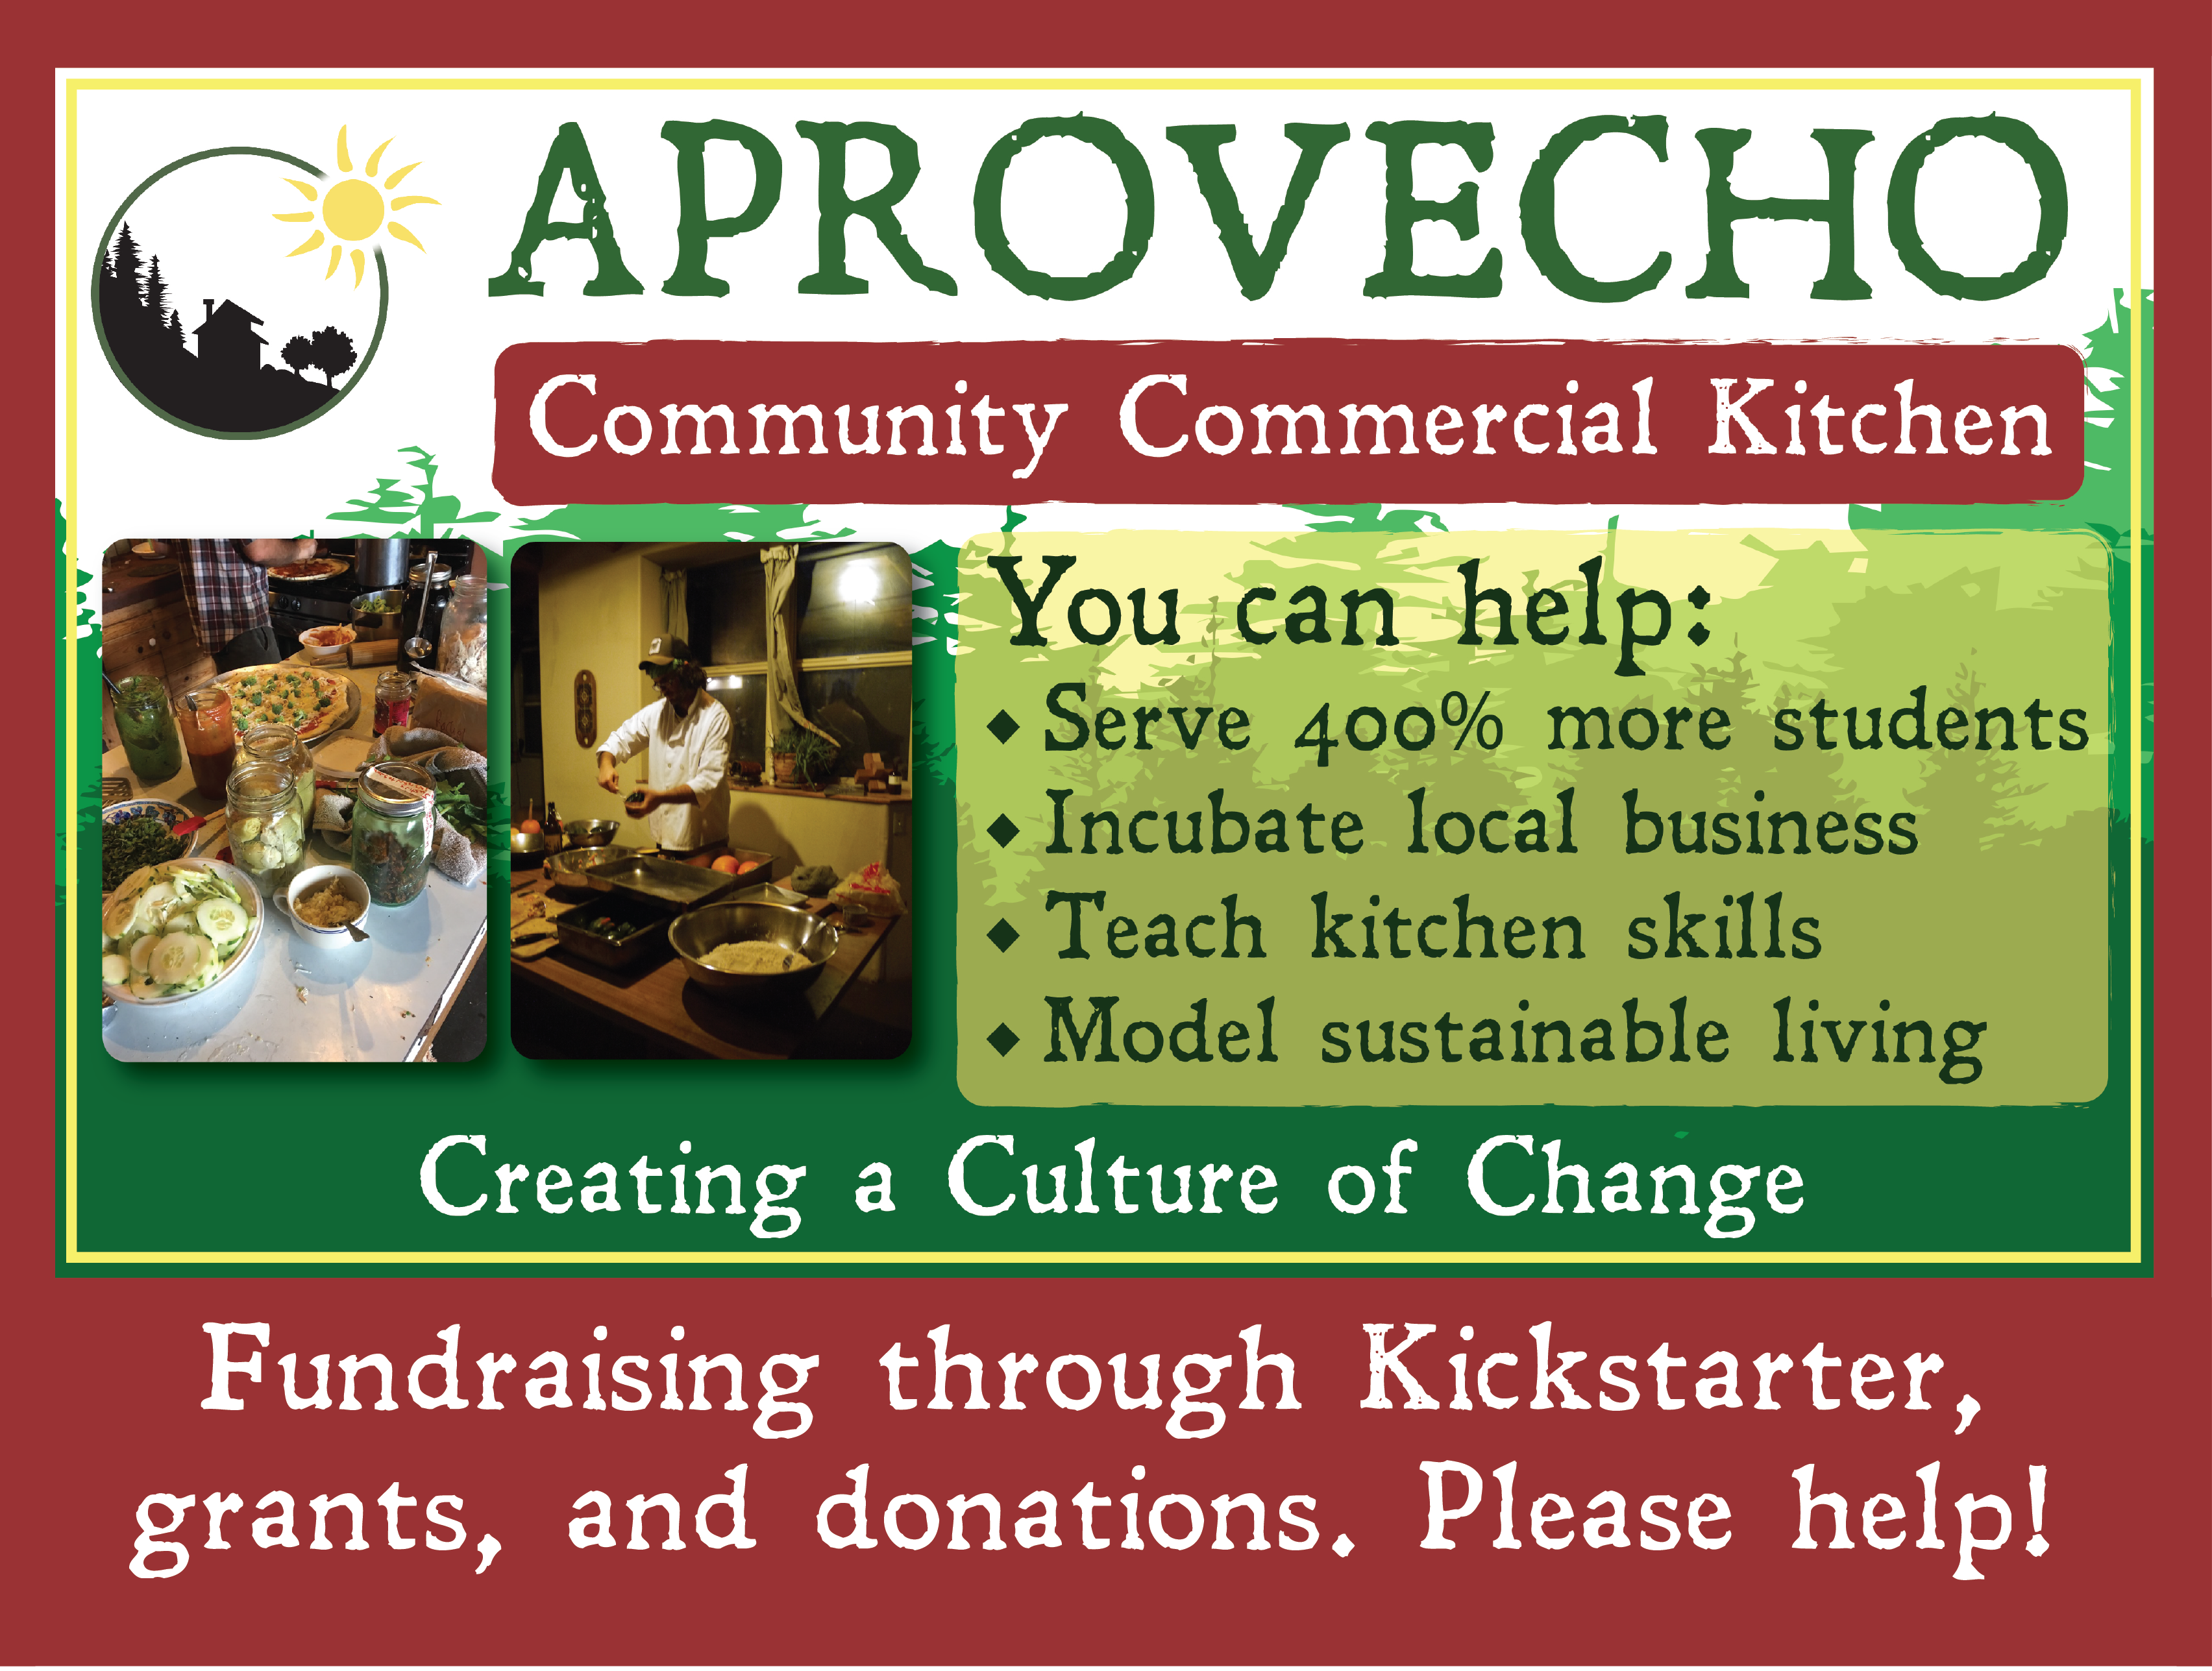 We're fundraising for a commercial kitchen!